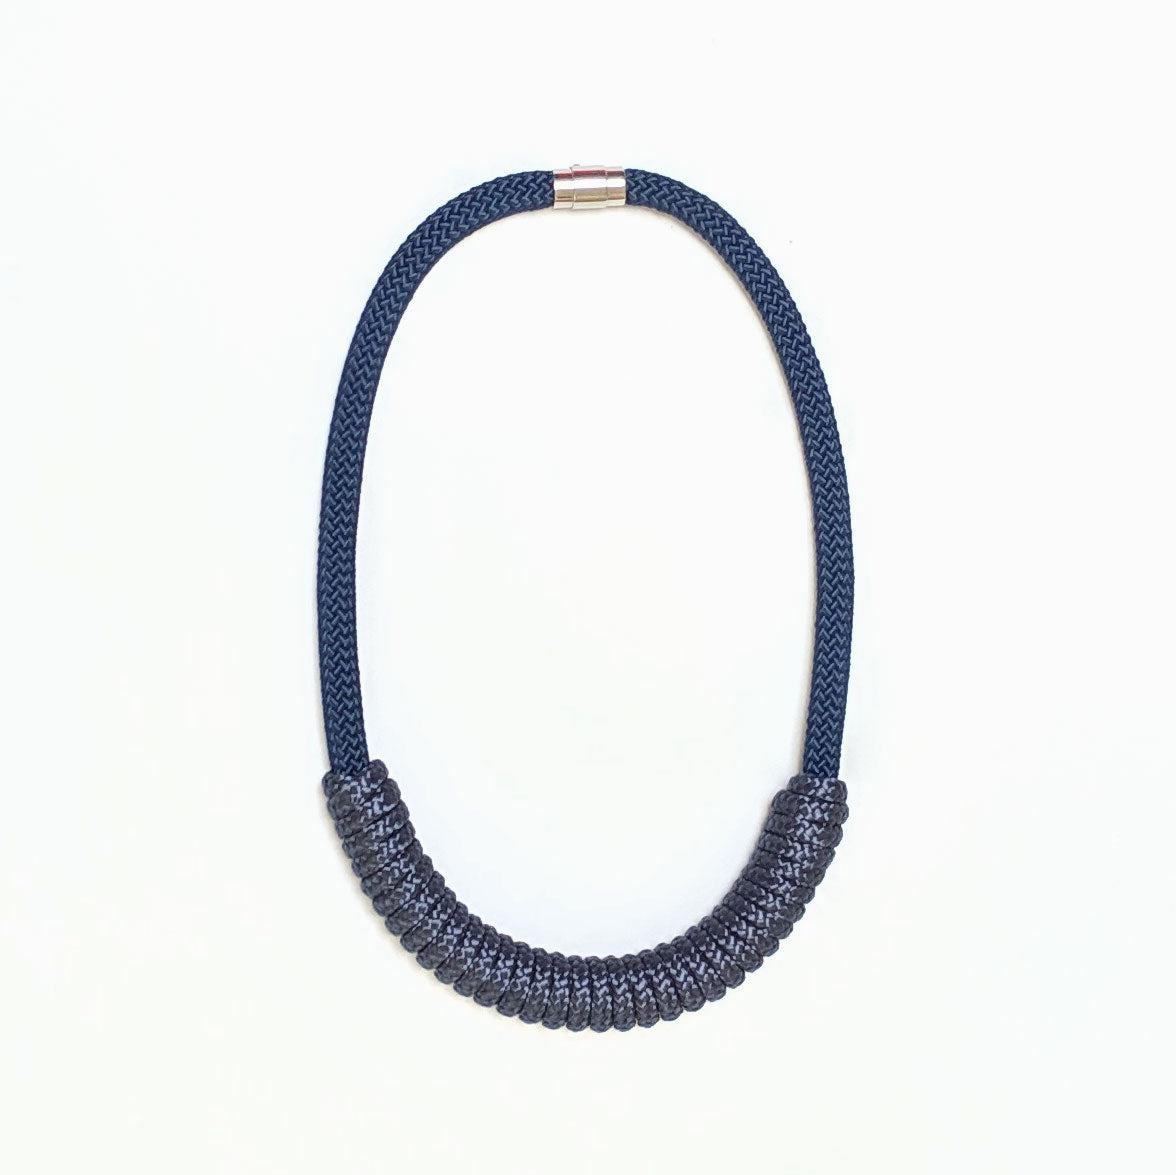 The Billie rope necklace - All Navy